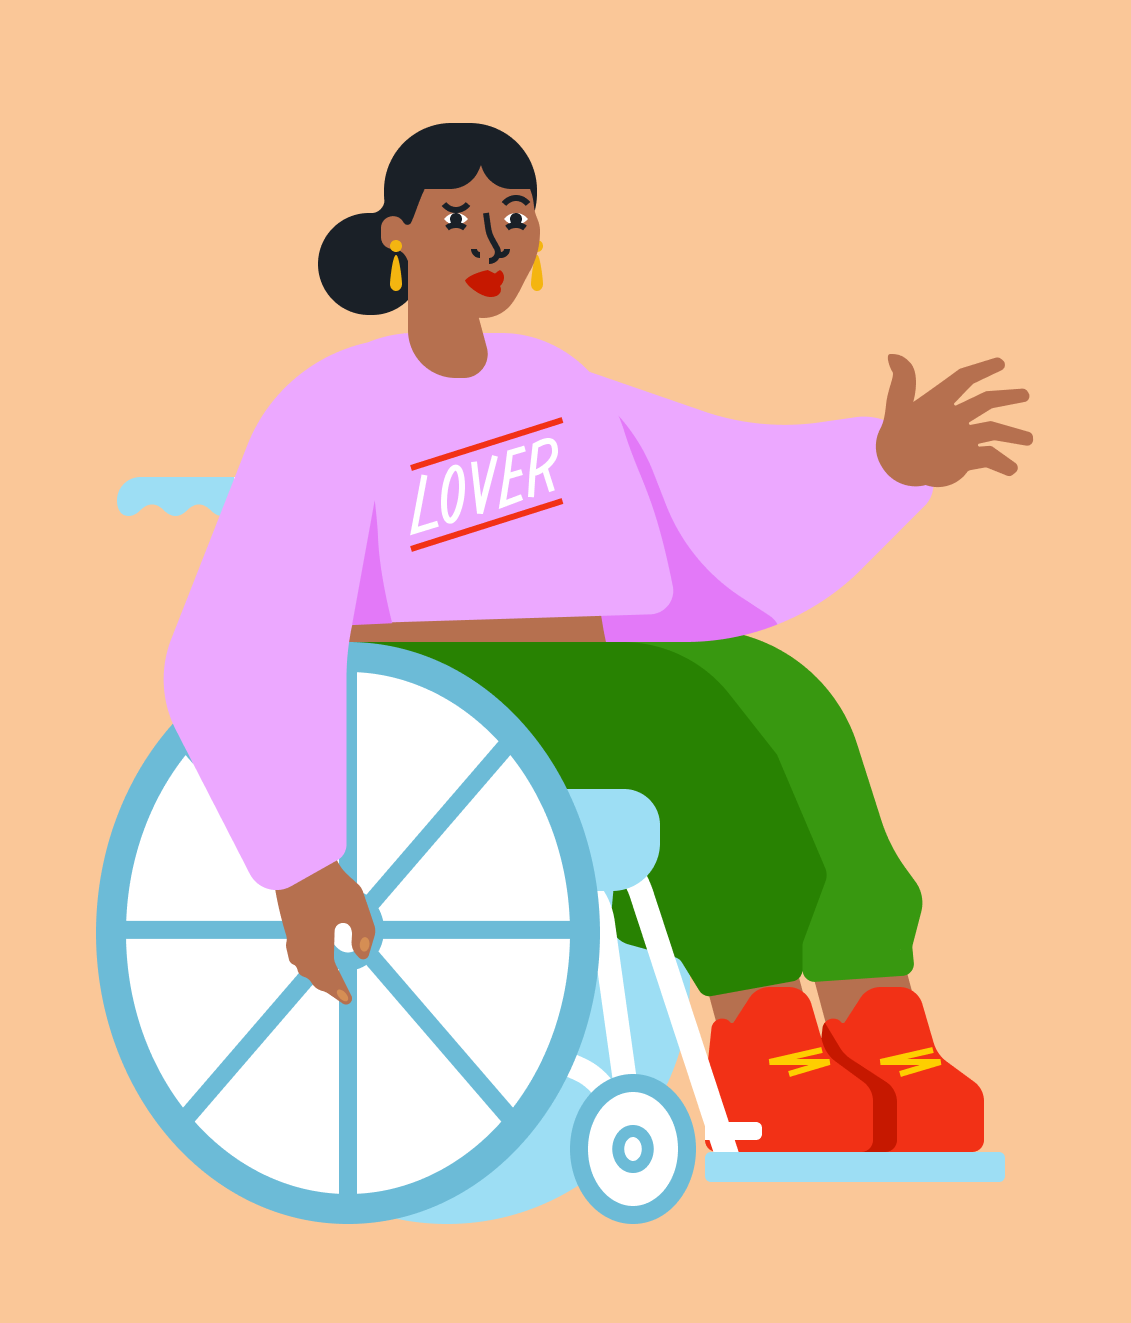 Digital illustration of woman in wheelchair with shirt that reads 'Lover'